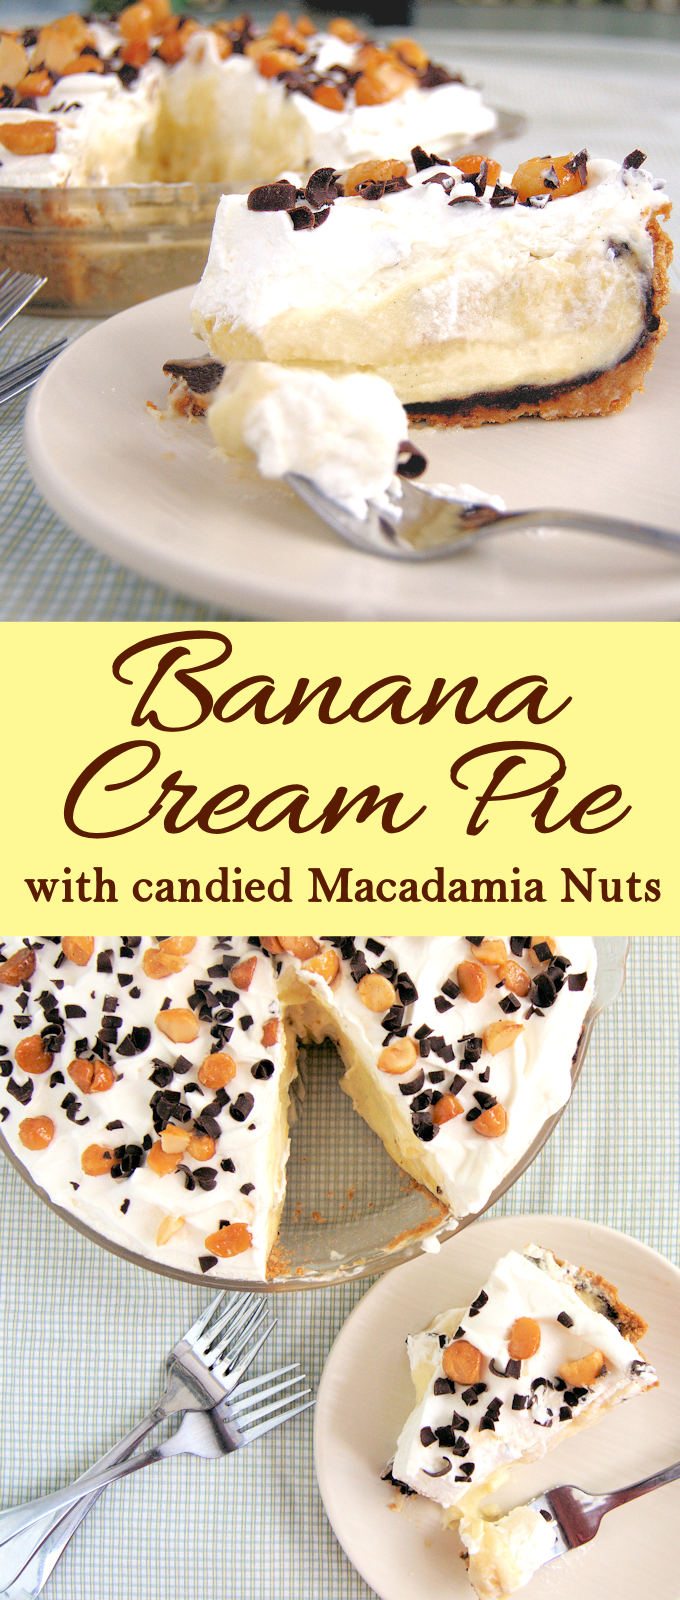 This homemade Banana Cream Pie recipe is really easy and so tasty. A chocolate lined graham cracker crust is filled with banana cream made from scratch using real bananas, milk and eggs. The pie is topped with whipped cream and candied macadamia nuts